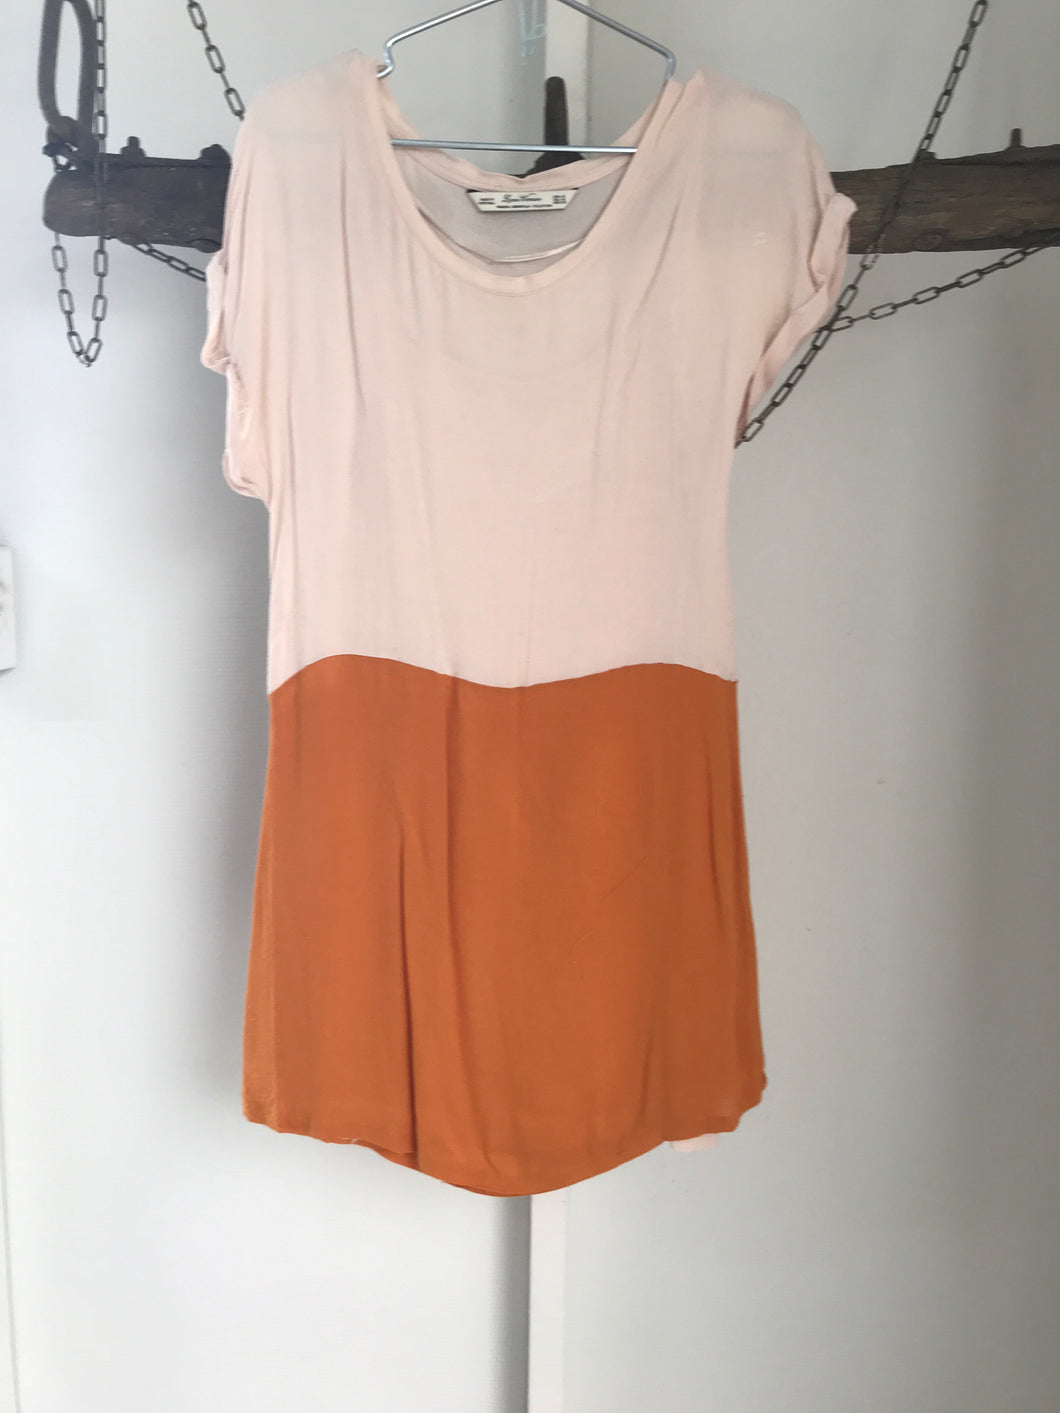 Zara Cream/Mustard Dress Size 10